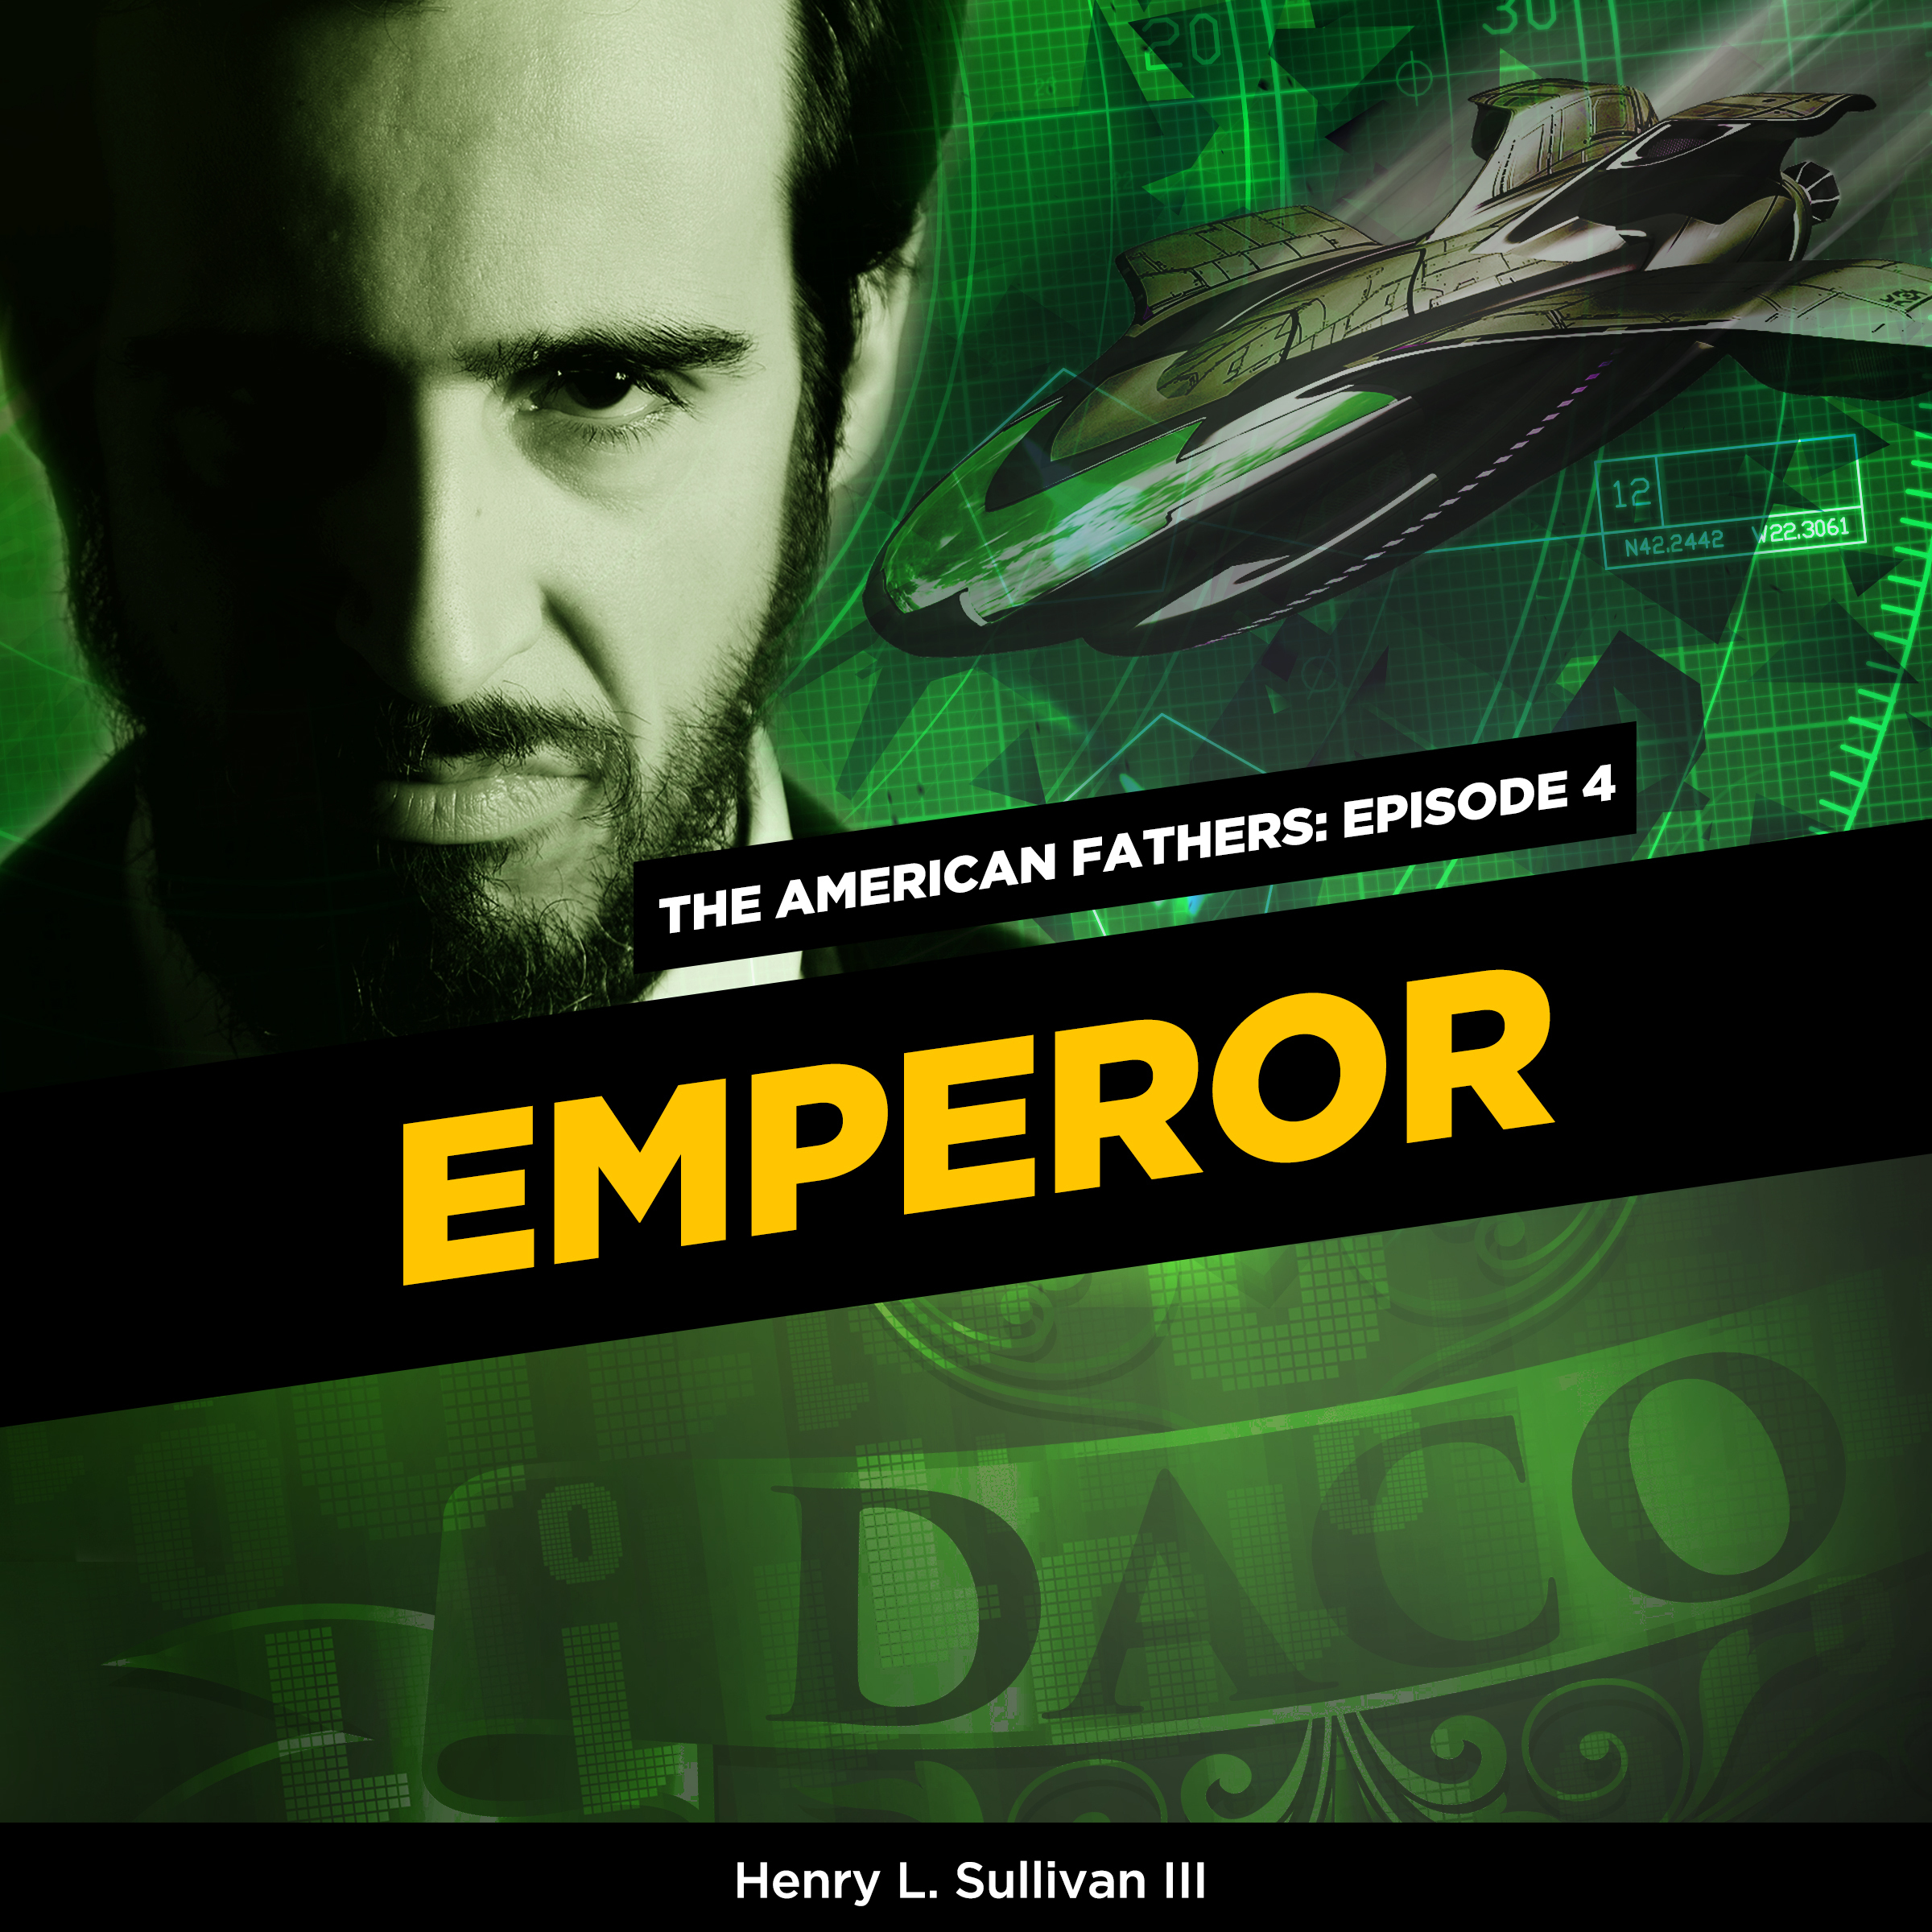 Printable THE AMERICAN FATHERS EPISODE 4: EMPEROR Audiobook Cover Art